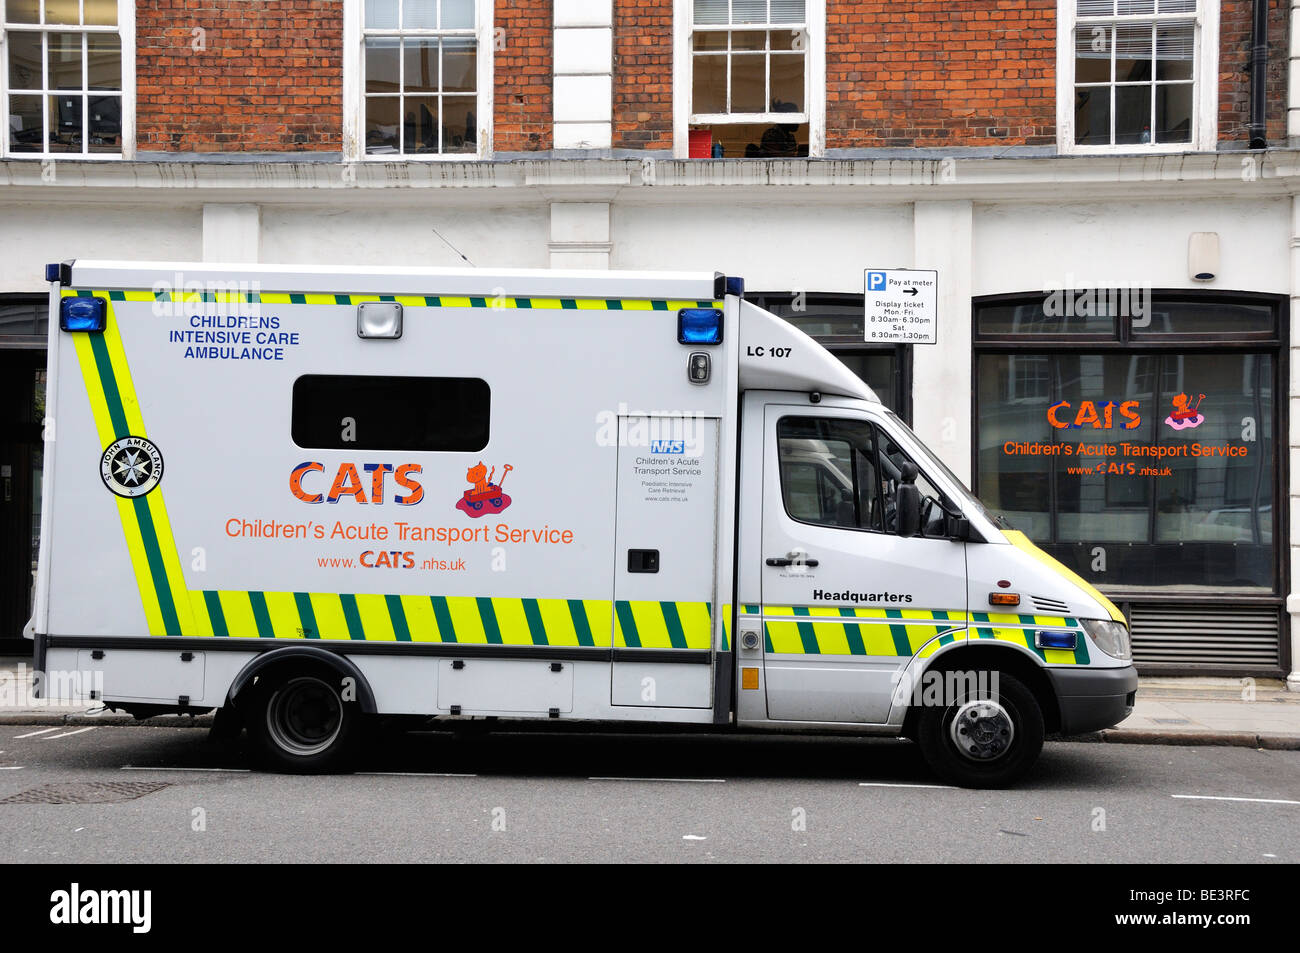 Children's Acute Transport Service in front of C.A.T.'s offices London England UK - Stock Image